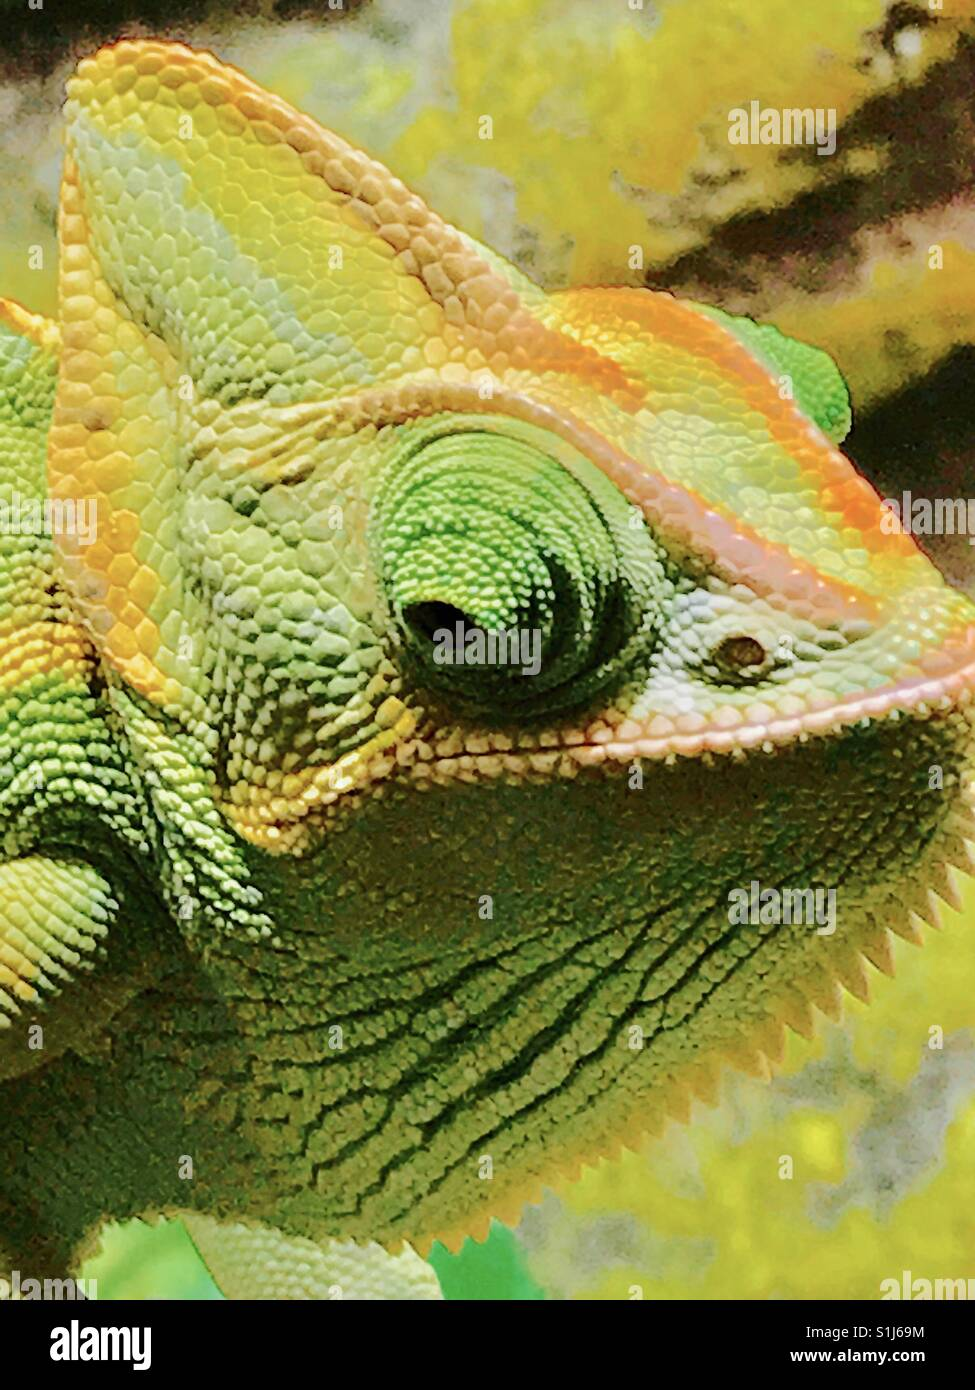 Chameleon in super saturated color - Stock Image